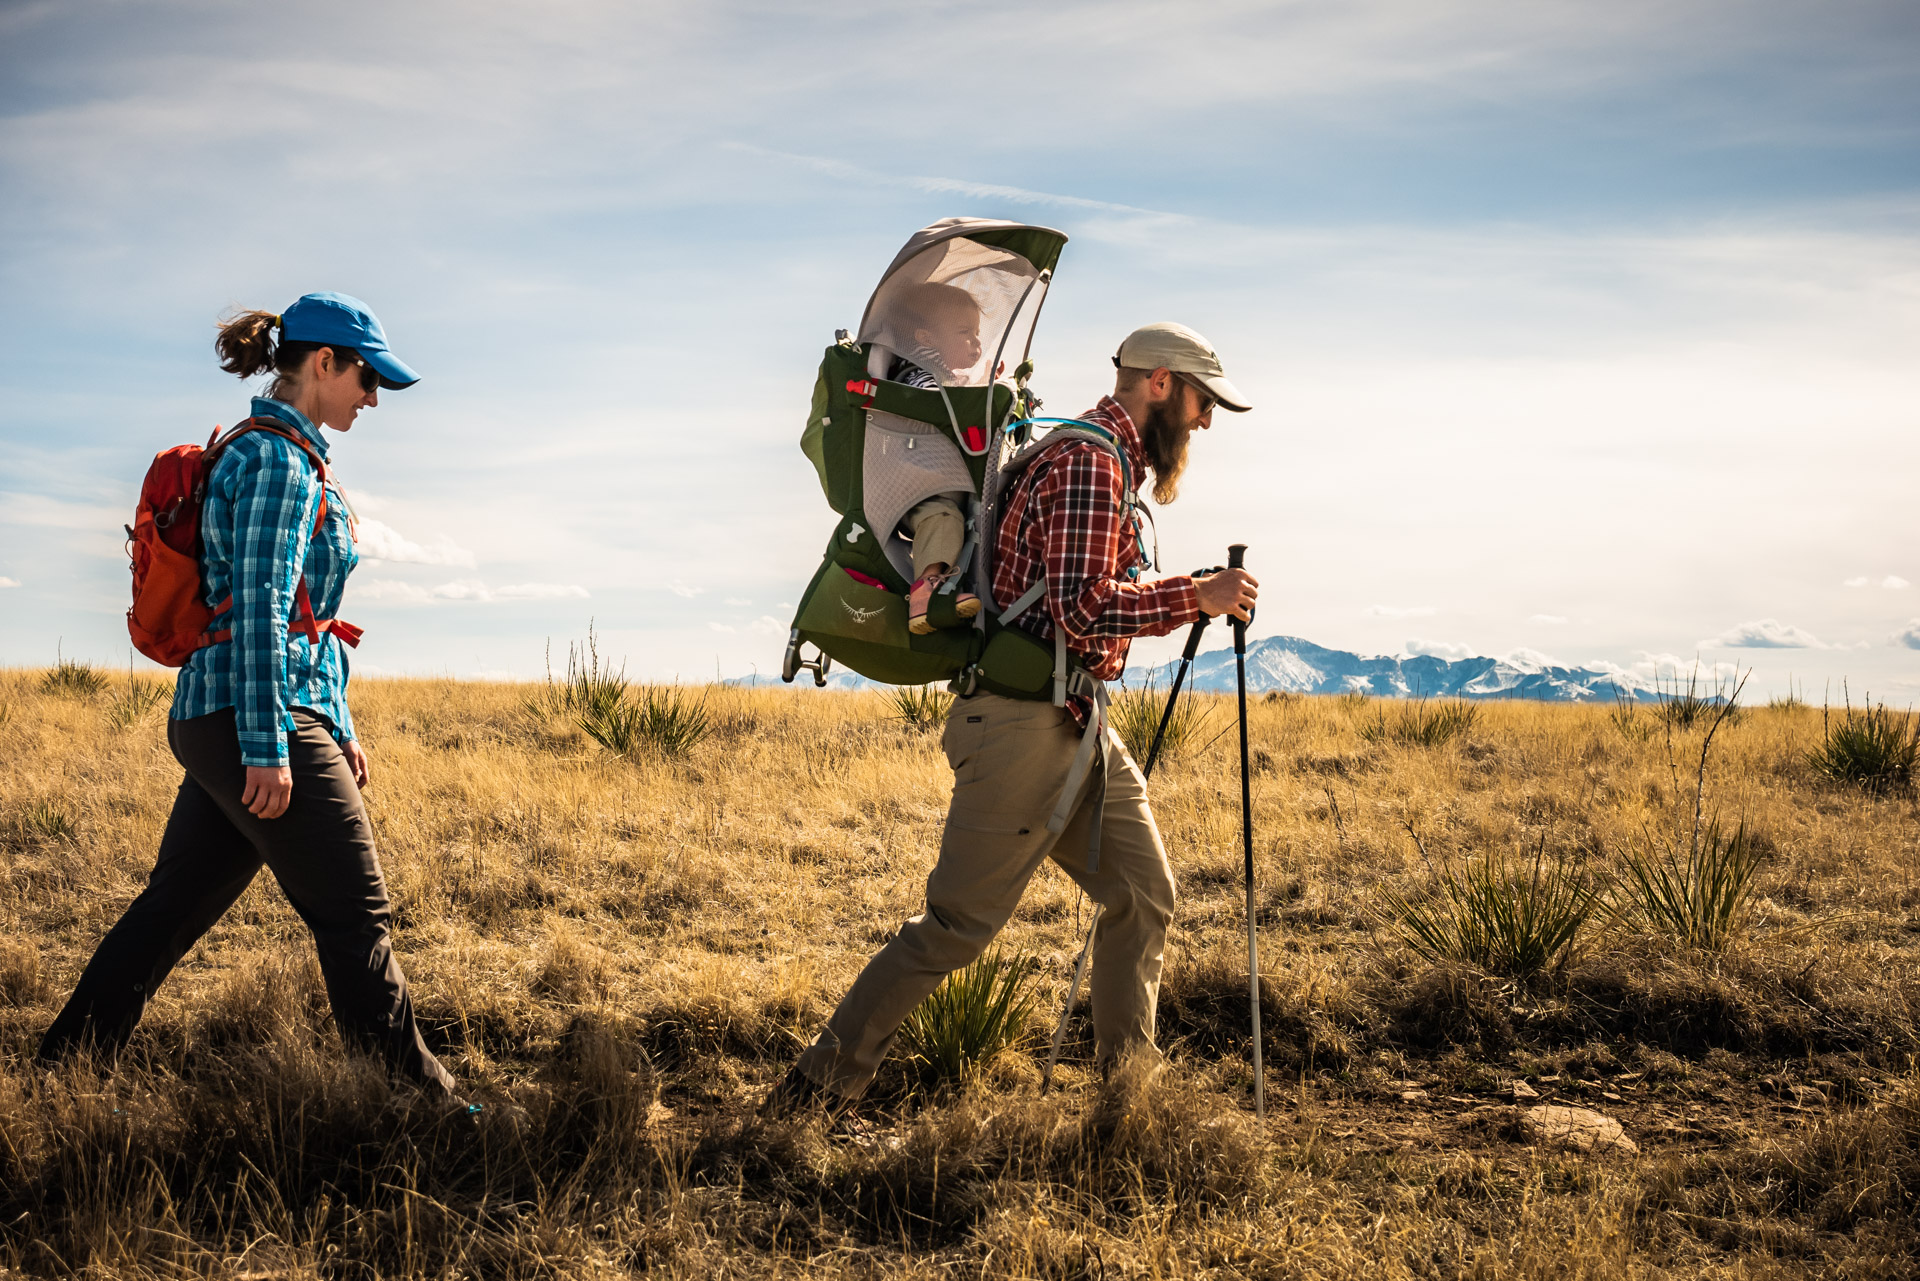 Sharing the gift of trail adventure on National Trails Day by Wesley Trimble for Hike it Baby